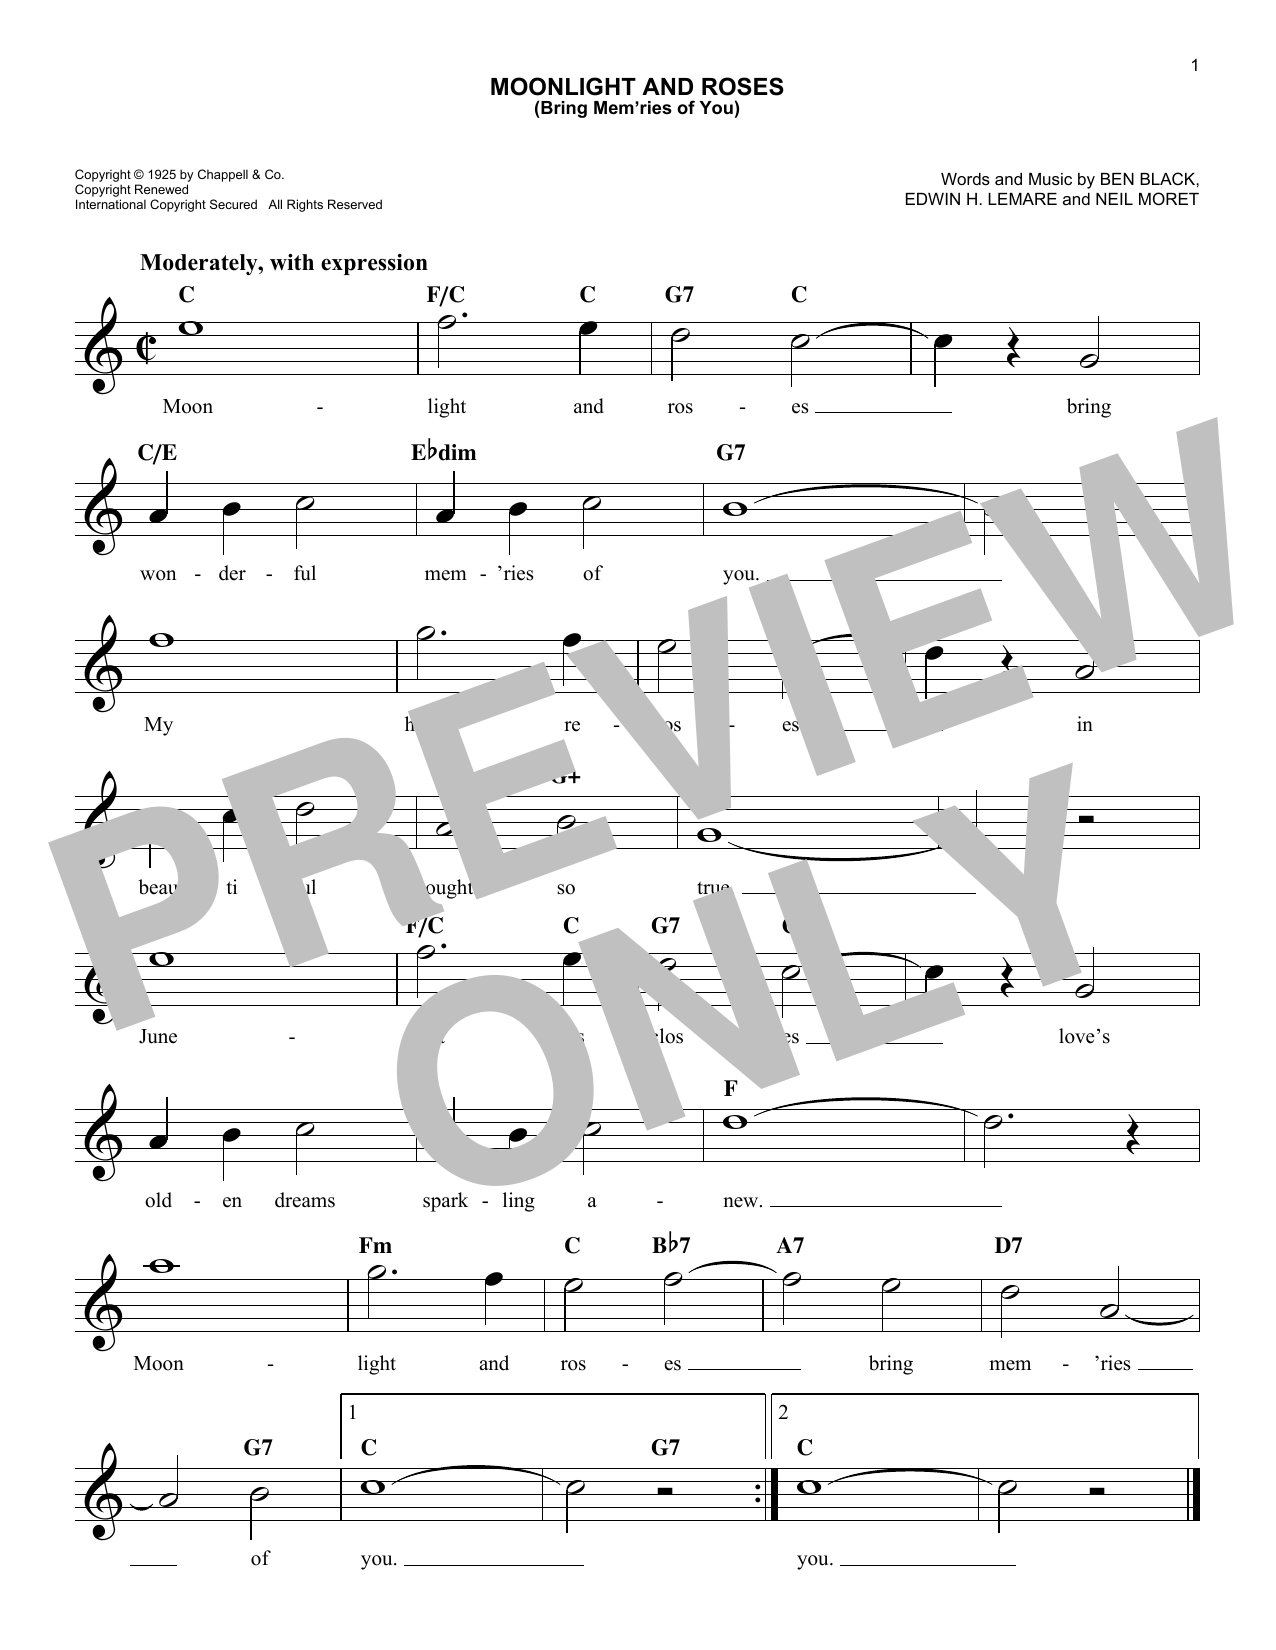 Edwin Lemare Moonlight And Roses (Bring Mem'ries Of You) sheet music notes and chords. Download Printable PDF.